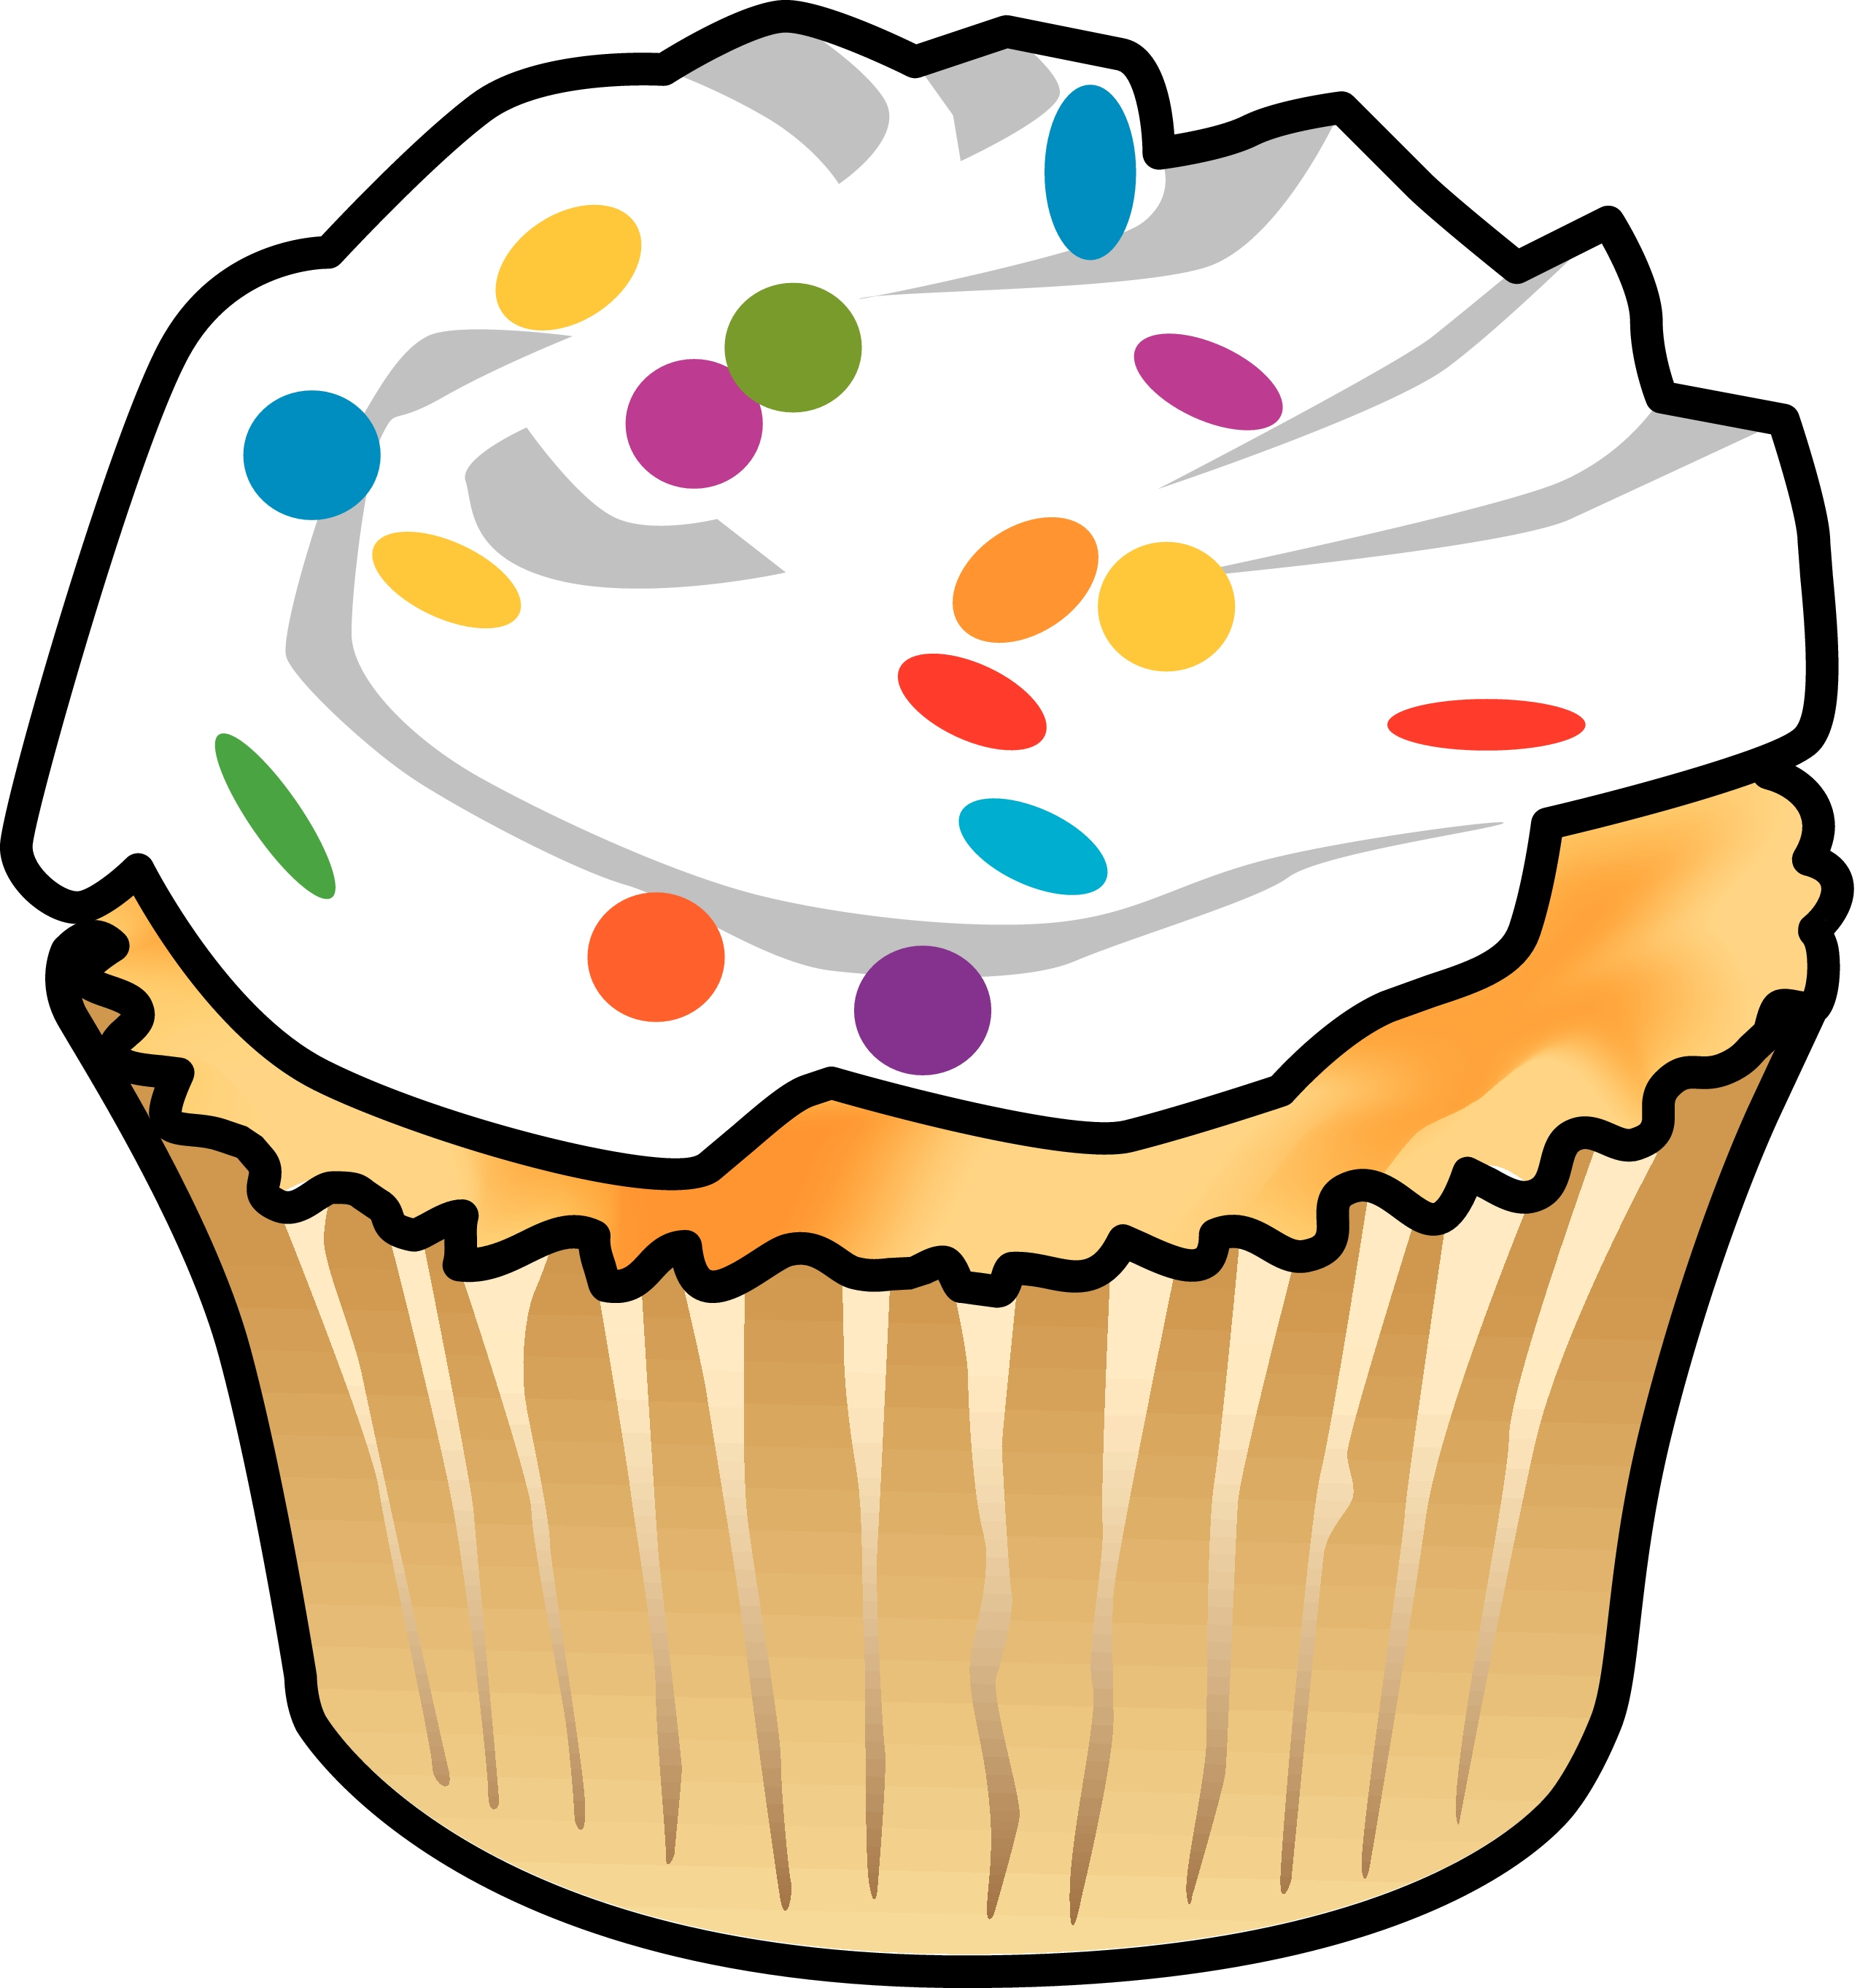 Vanilla Cupcake clipart colorful cupcake Cupcakes Preschool Cartoon BAKE AMERICAN